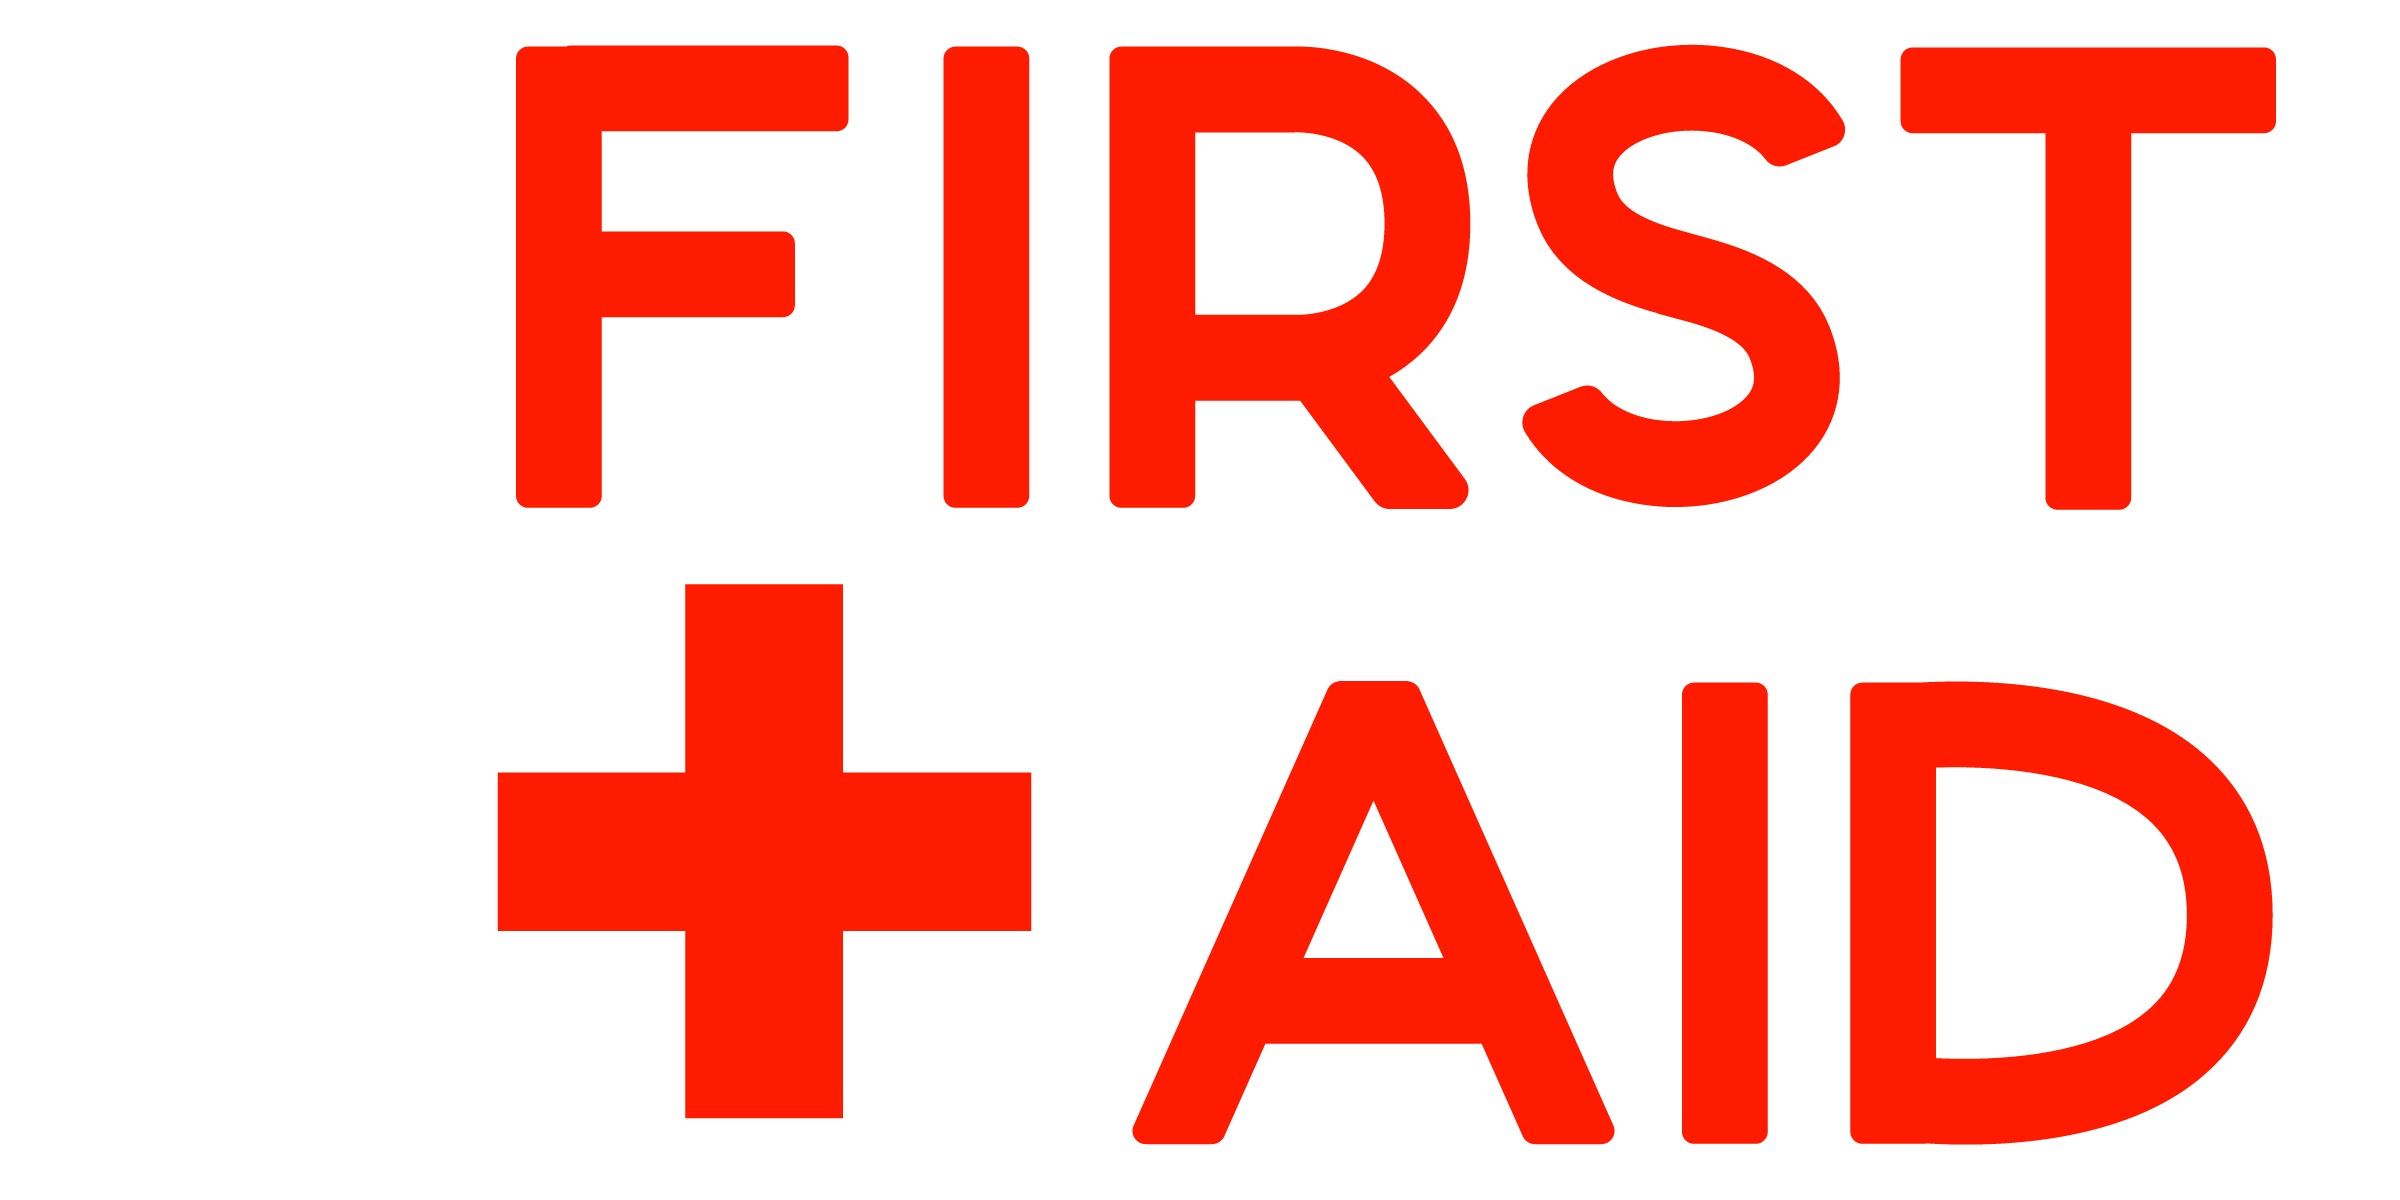 DIY Travel First Aid Kit | Altoids tins, Printable labels and Aid kit